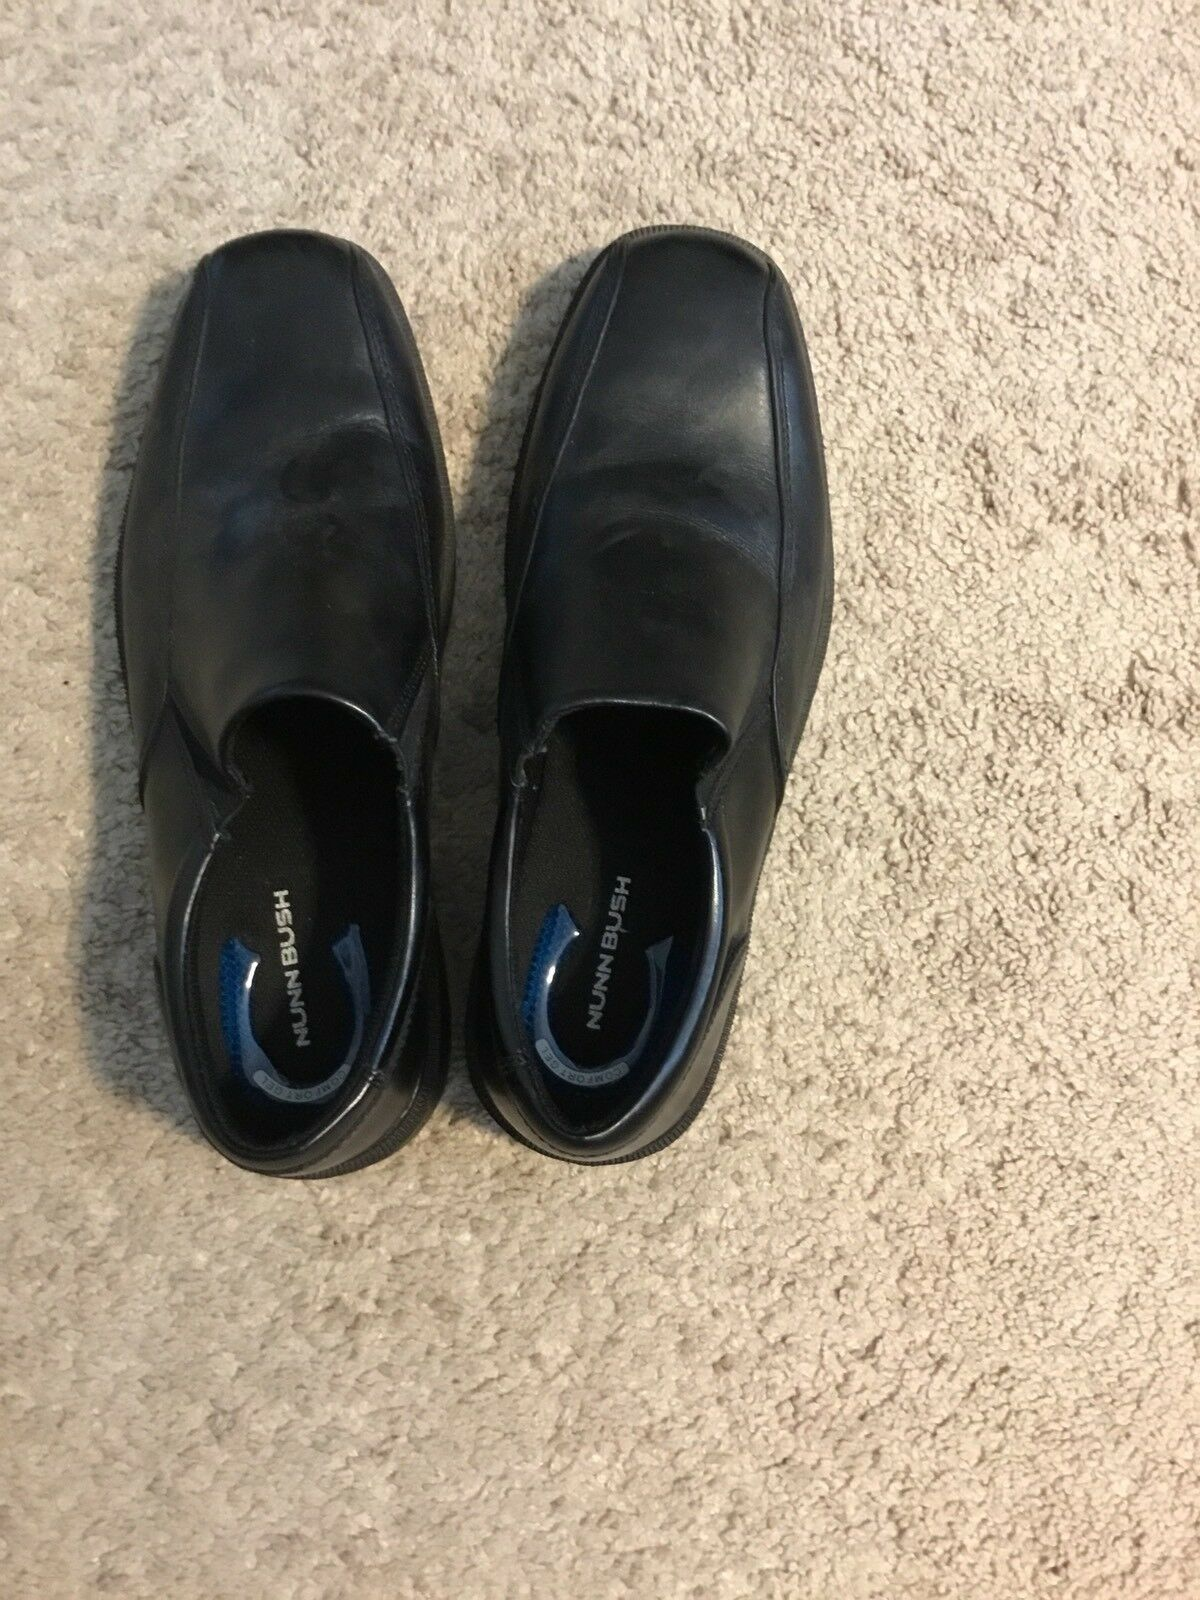 Nunn Bush 10.5 Black Loafer Shoe size 10.5 Bush Pre-Owned 829ab3